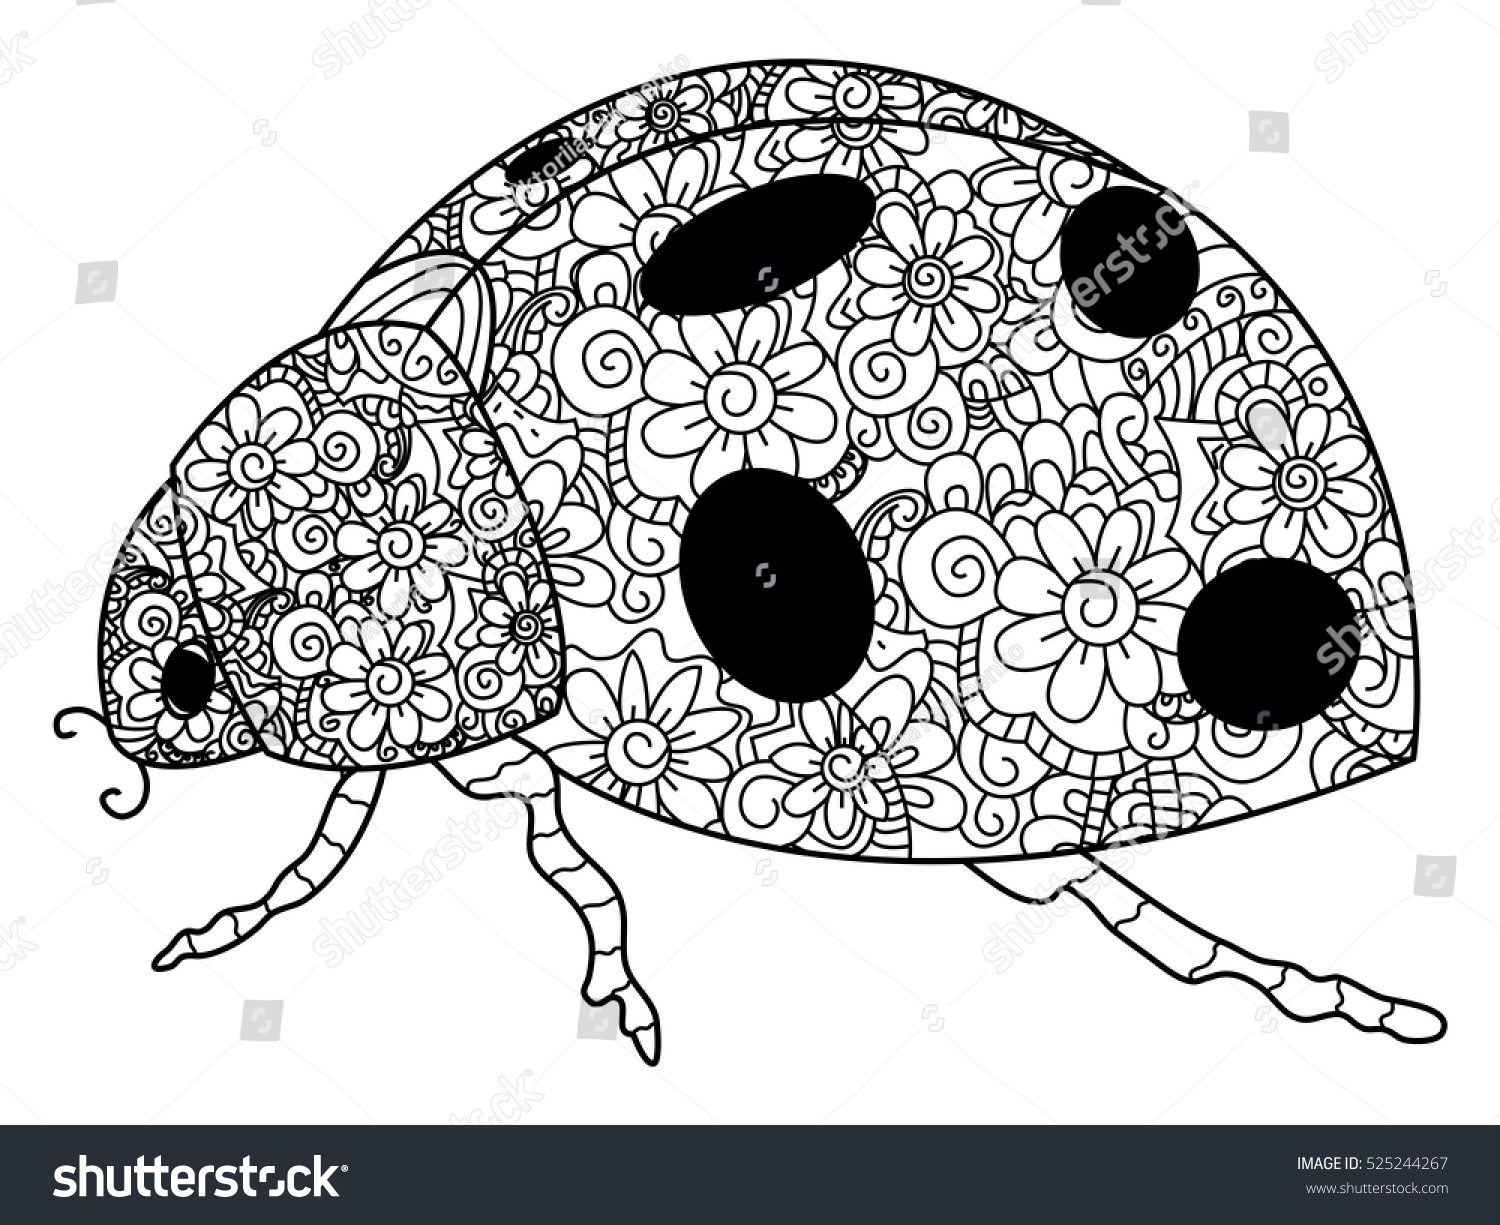 Coccinellidae Coloring Book Adults Vector Illustration Stock Vector